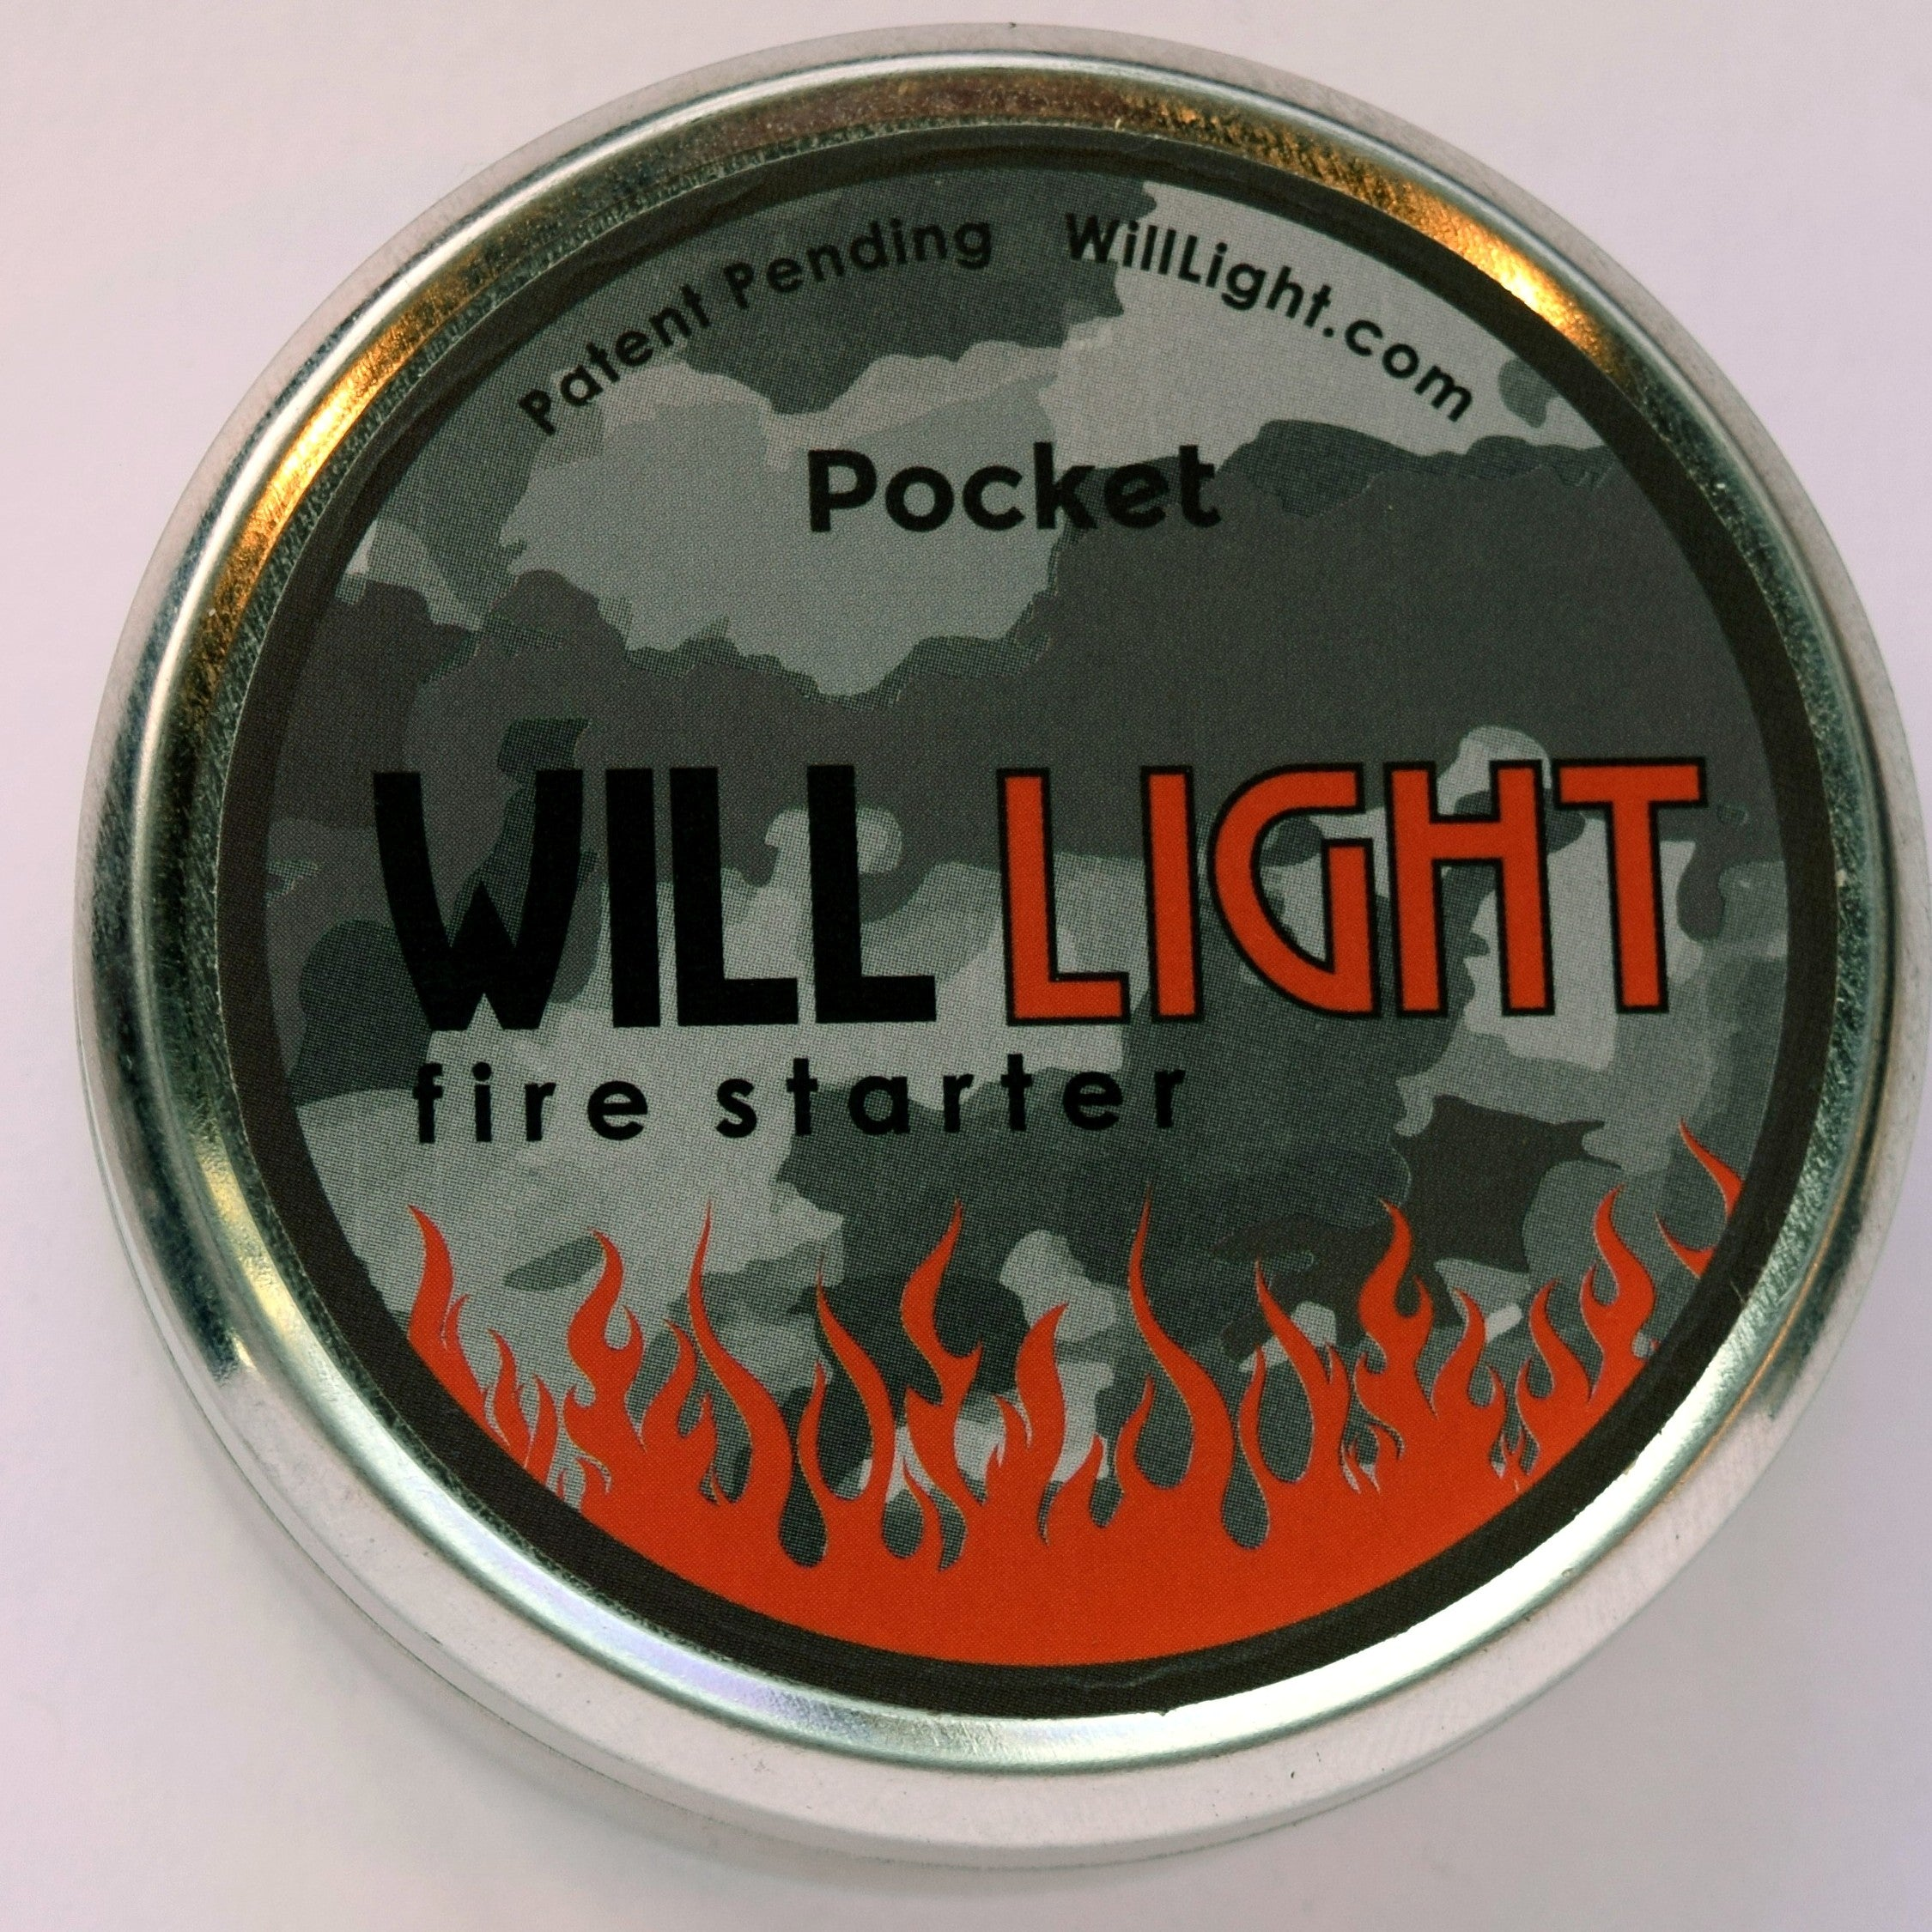 About the size of a fat can of chew, the Pocket Survival Tin provides the tools you need to survive the unexpected.